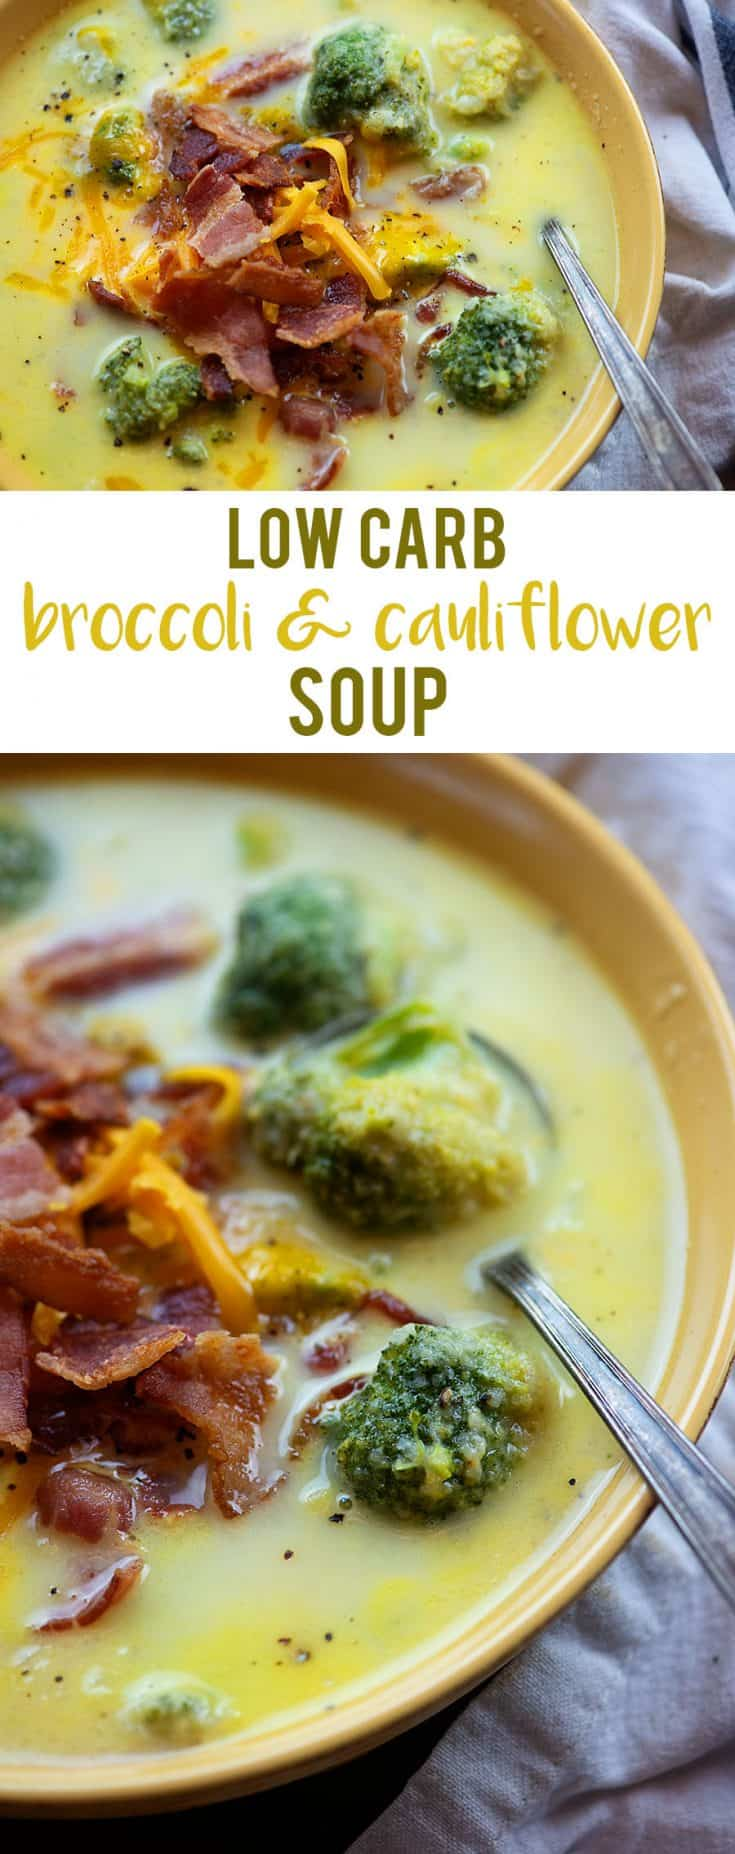 Broccoli Cauliflower Soup! Low carb, creamy, and cheesy! #recipe #lowcarb #keto #soup